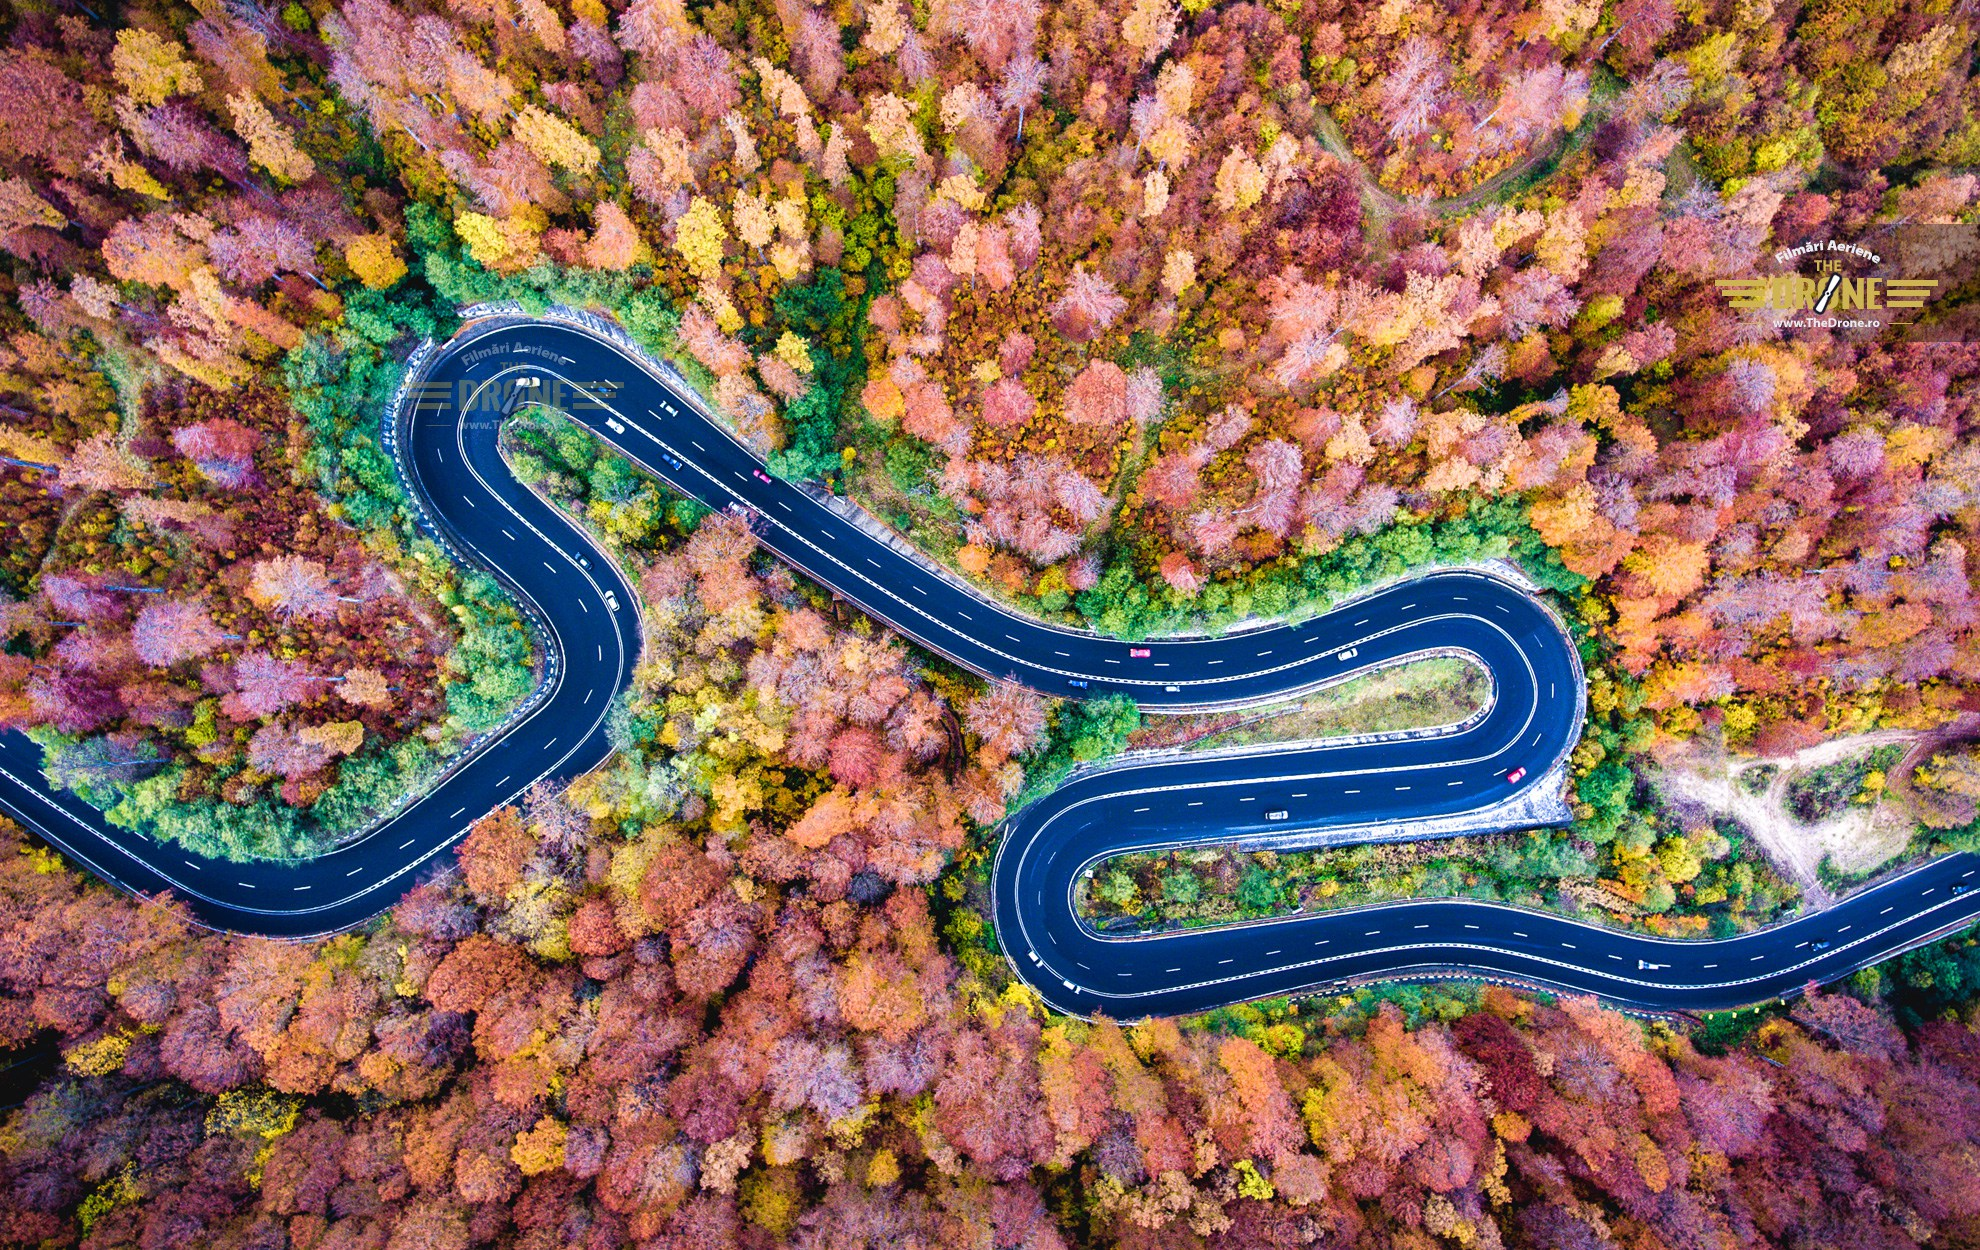 Incredible pictures that show why autumn is the best season Picture: CALIN-ANDREI STAN REF: http://news.nationalgeographic.com/2016/11/fall-drone-photos/ http://i0.wp.com/www.thedrone.ro/wp-content/uploads/2016/06/toamna-transilvania-foto-aerian.jpg?fit=1980%2C1250